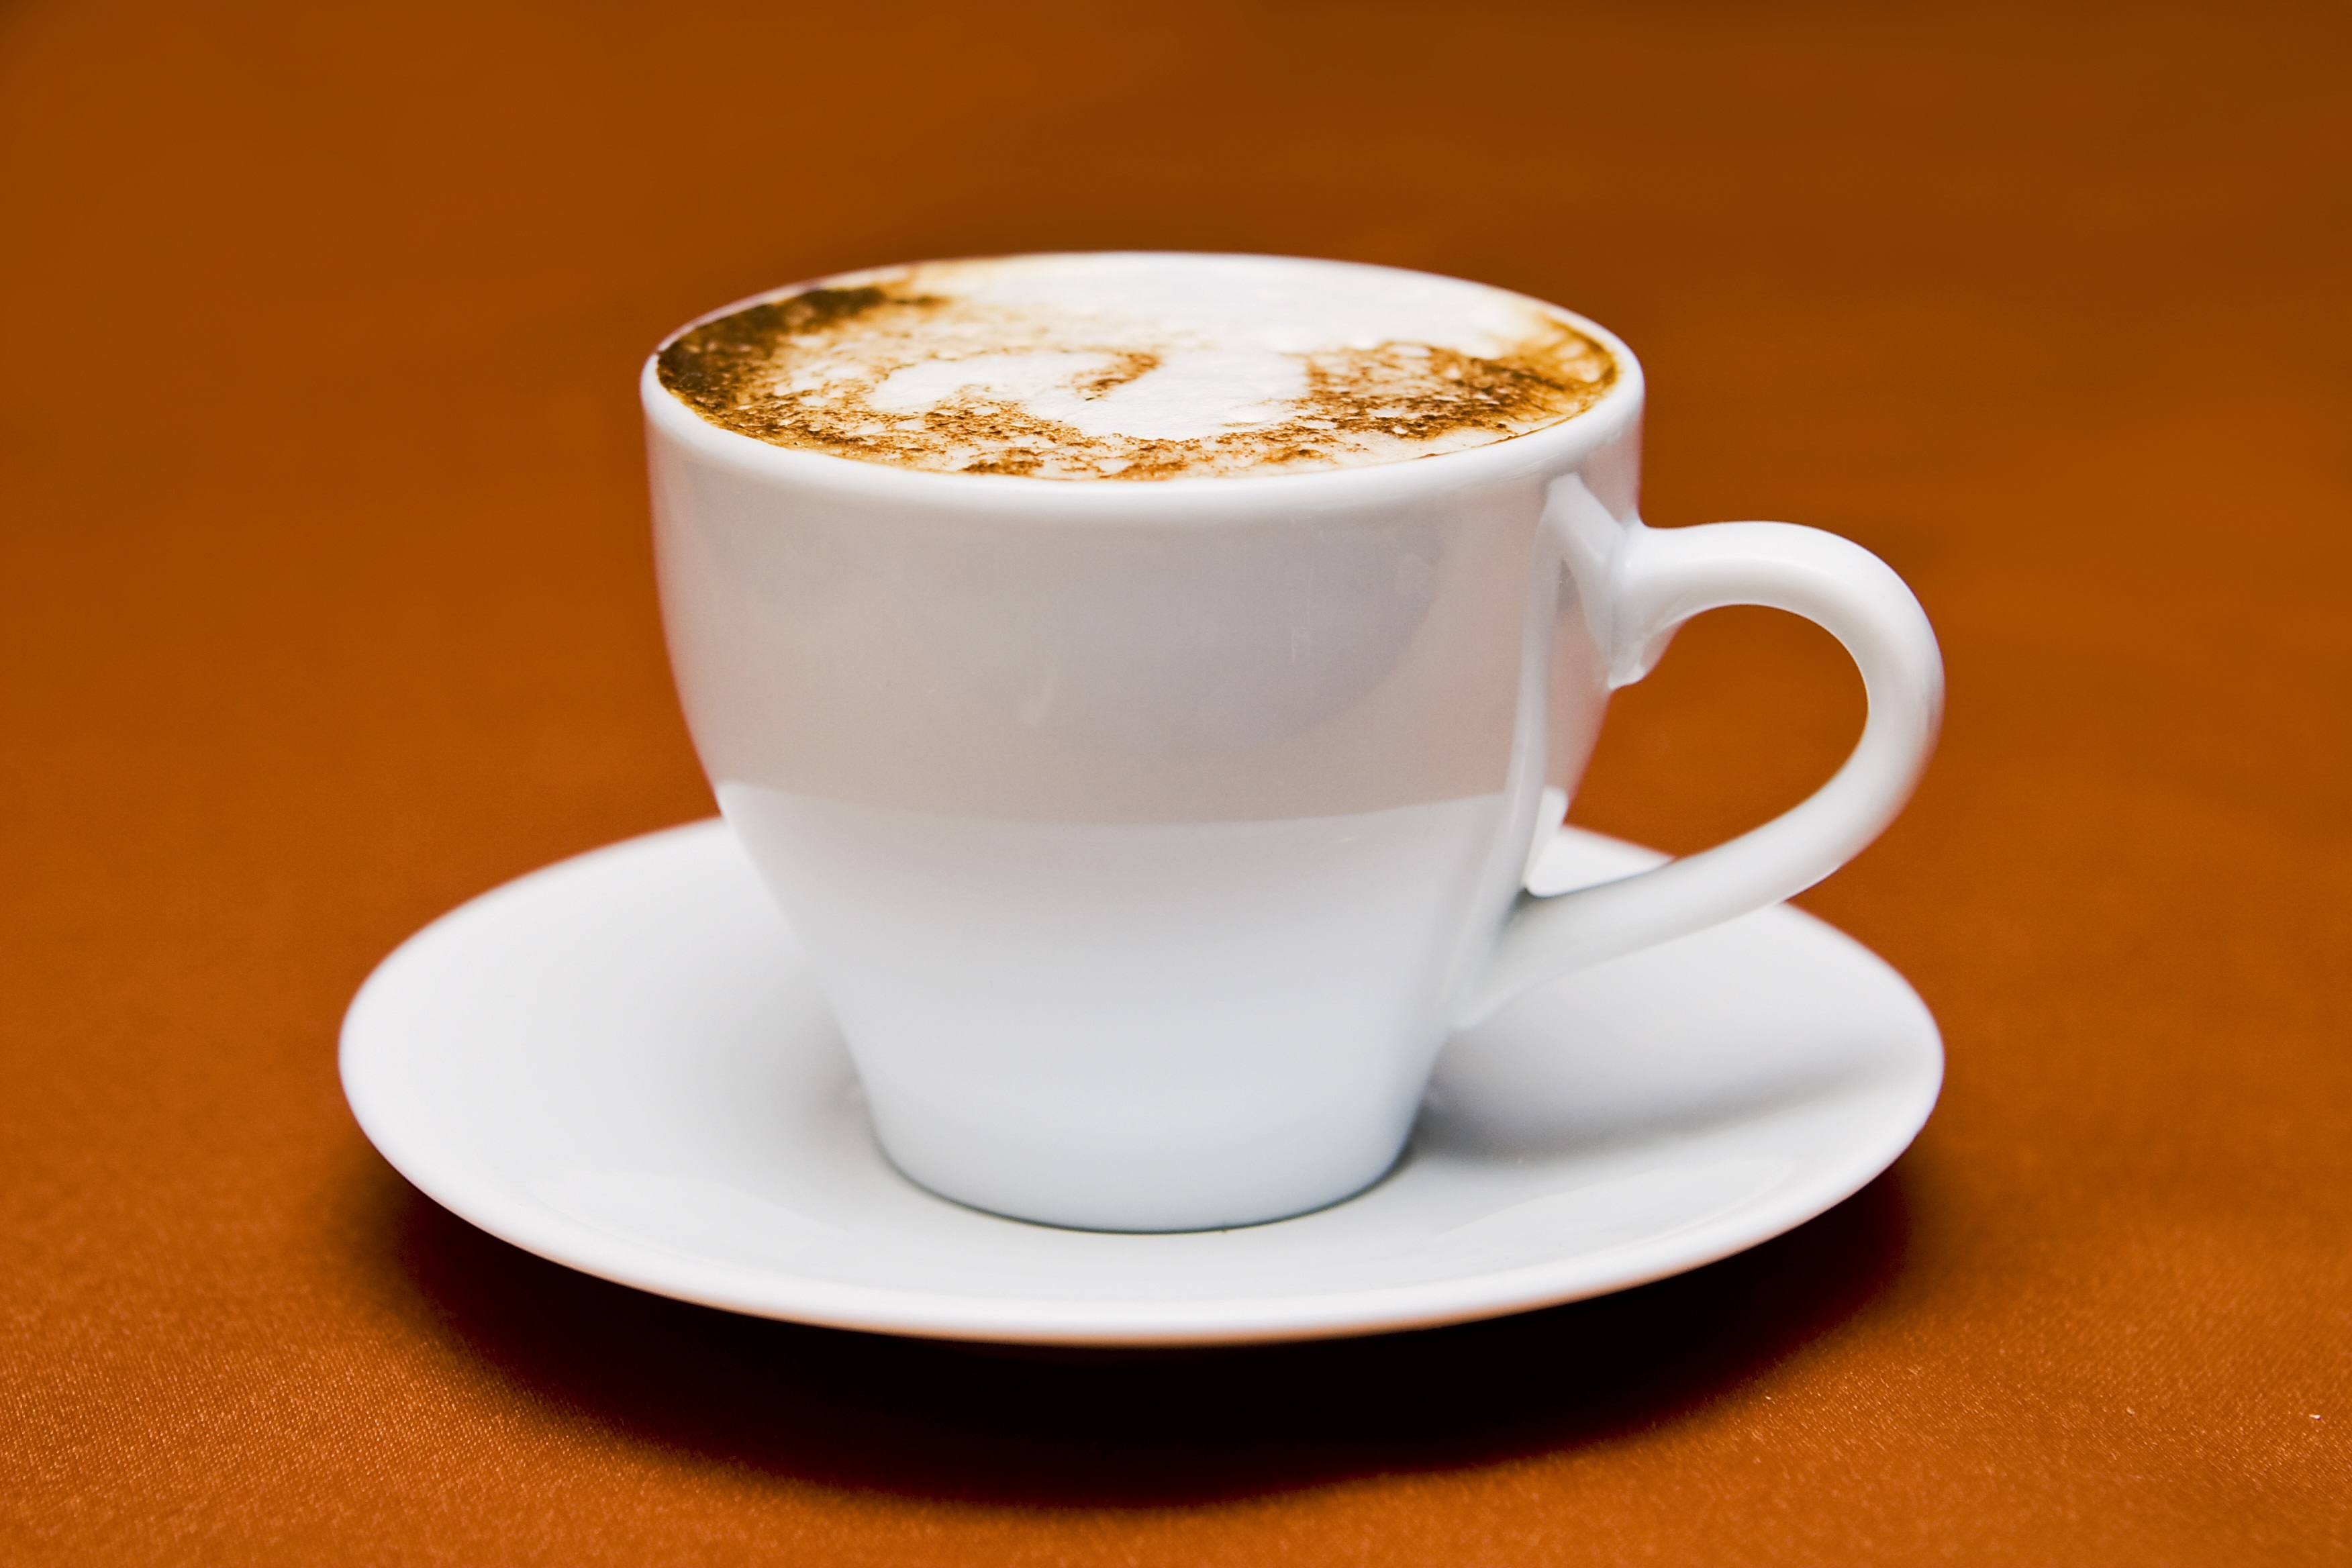 White Ceramic Cup on White Ceramic Saucer · Free Stock Photo